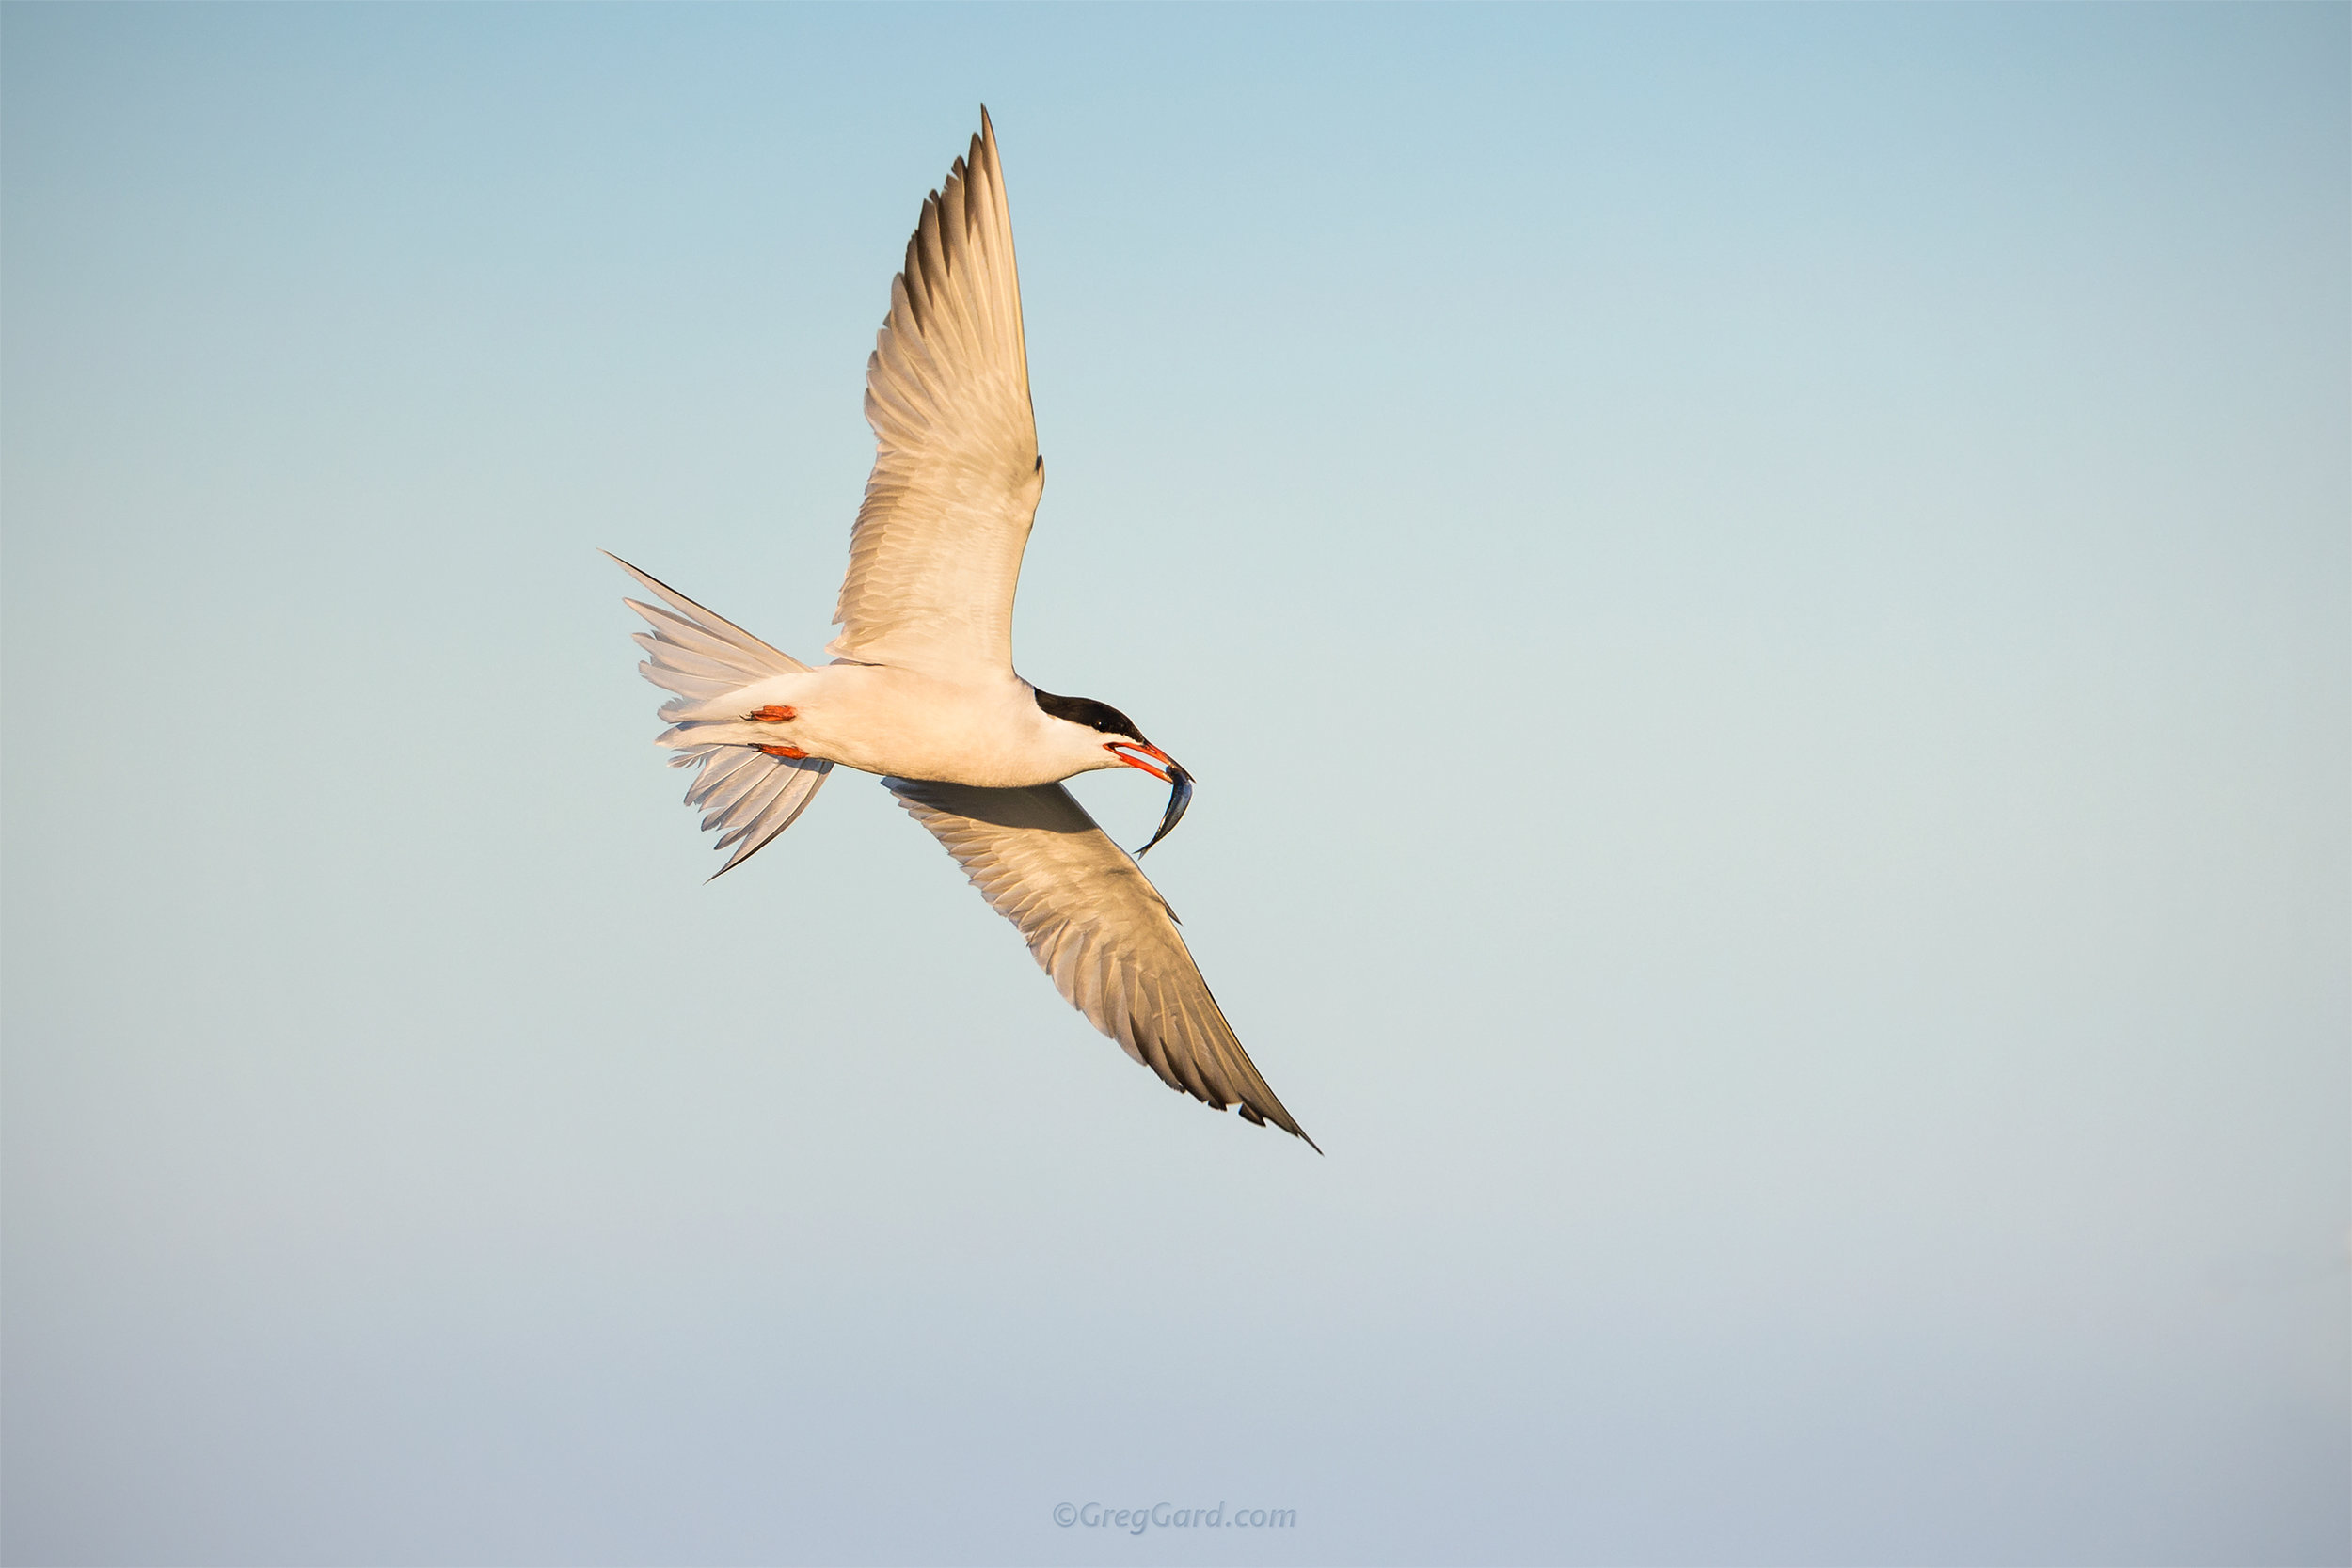 Common Tern - Nickerson Beach, NY - landscape version of the same photo